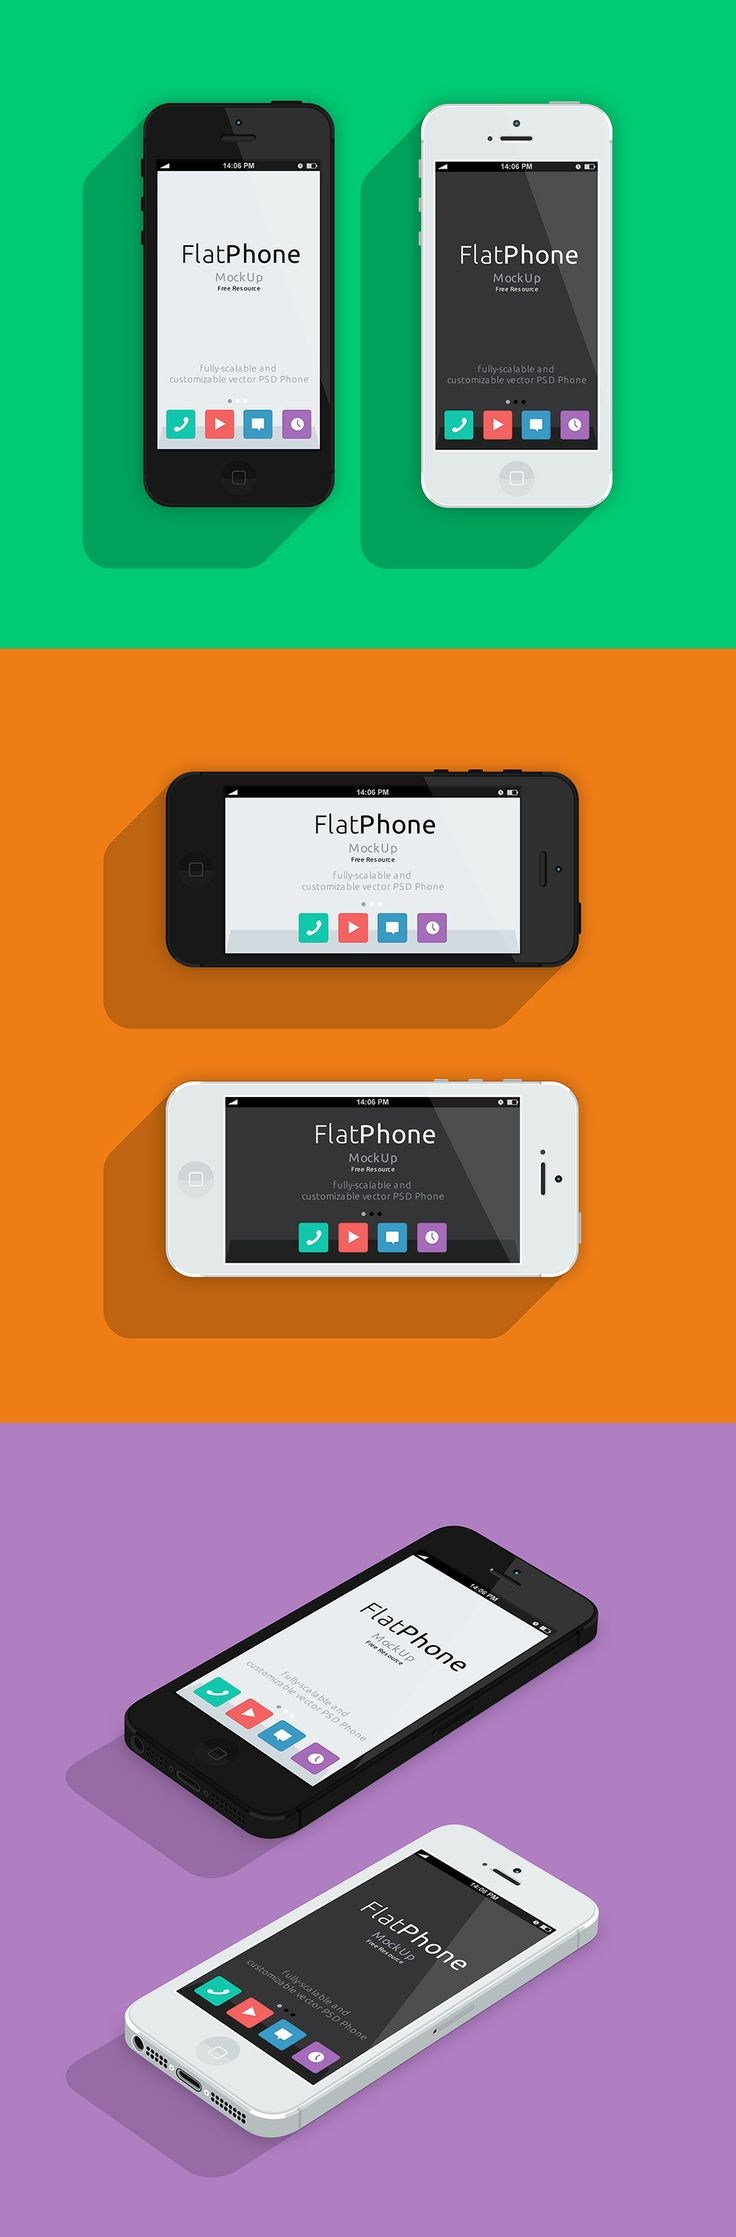 FlatPhone Mockup | Freebie San - Get your design freebies for all your design needs